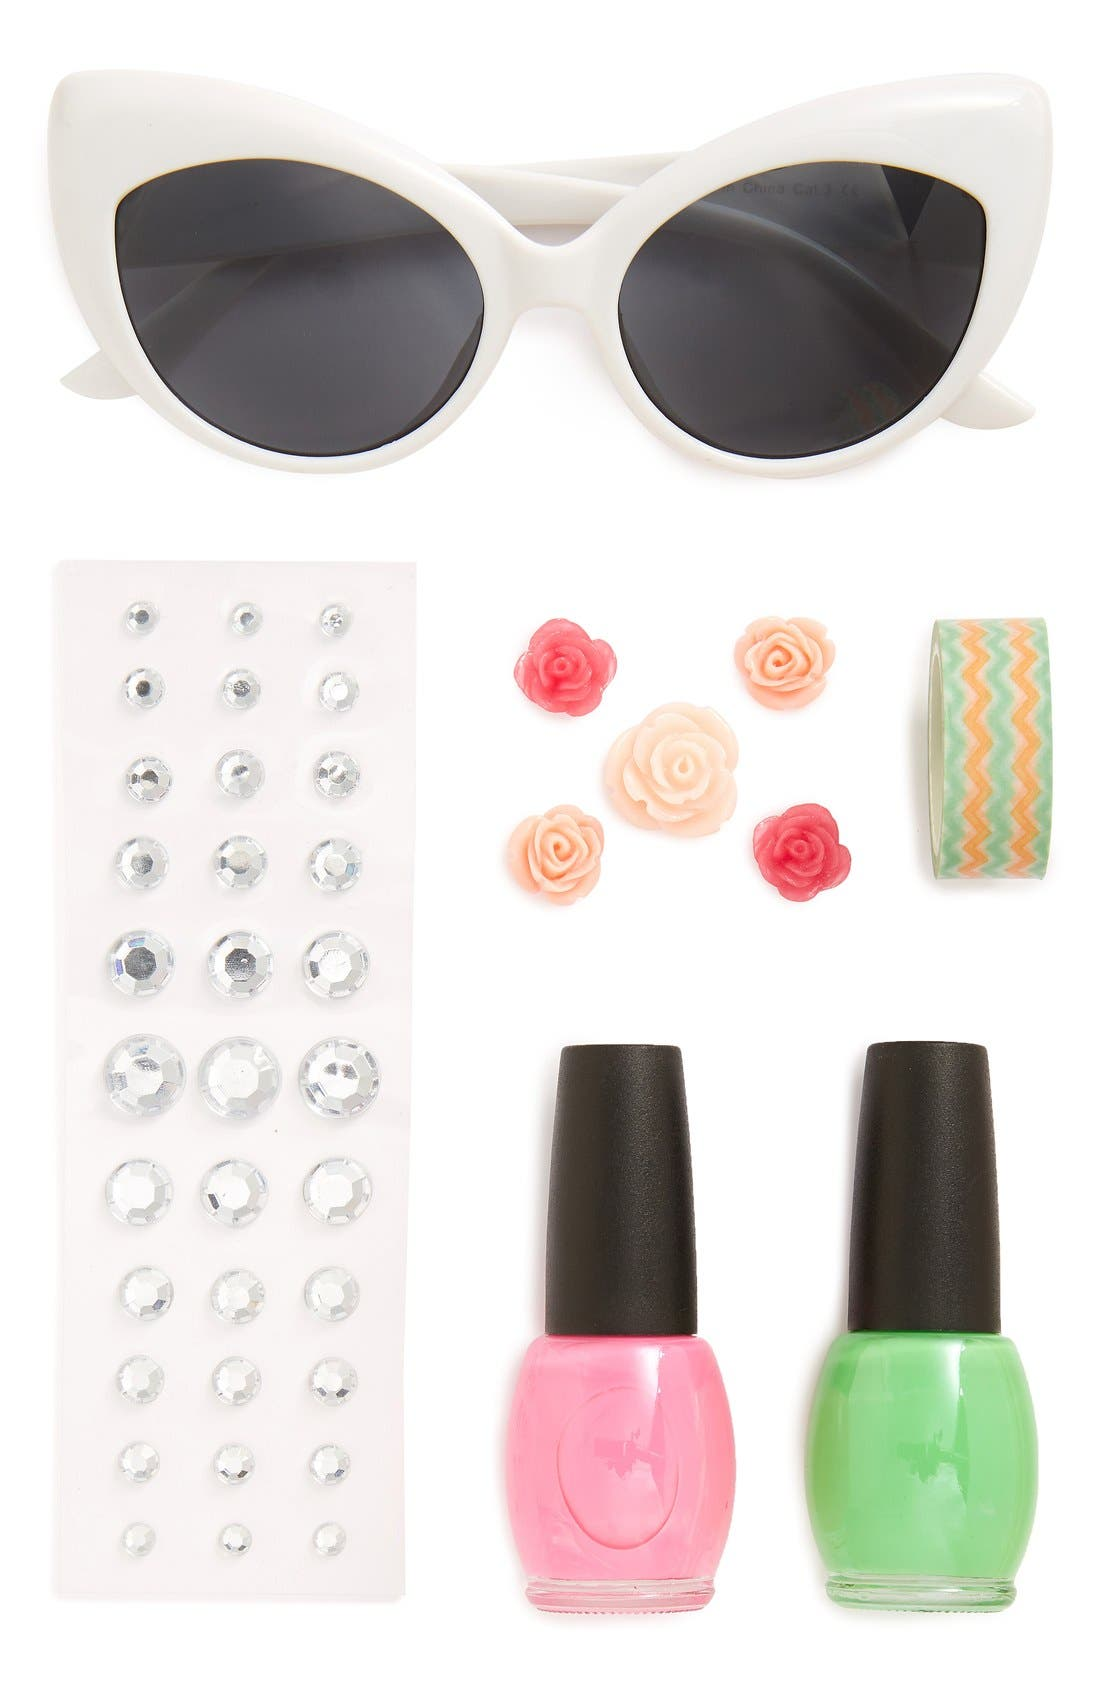 seedling 'Design Your Own Sunnies' Craft Kit